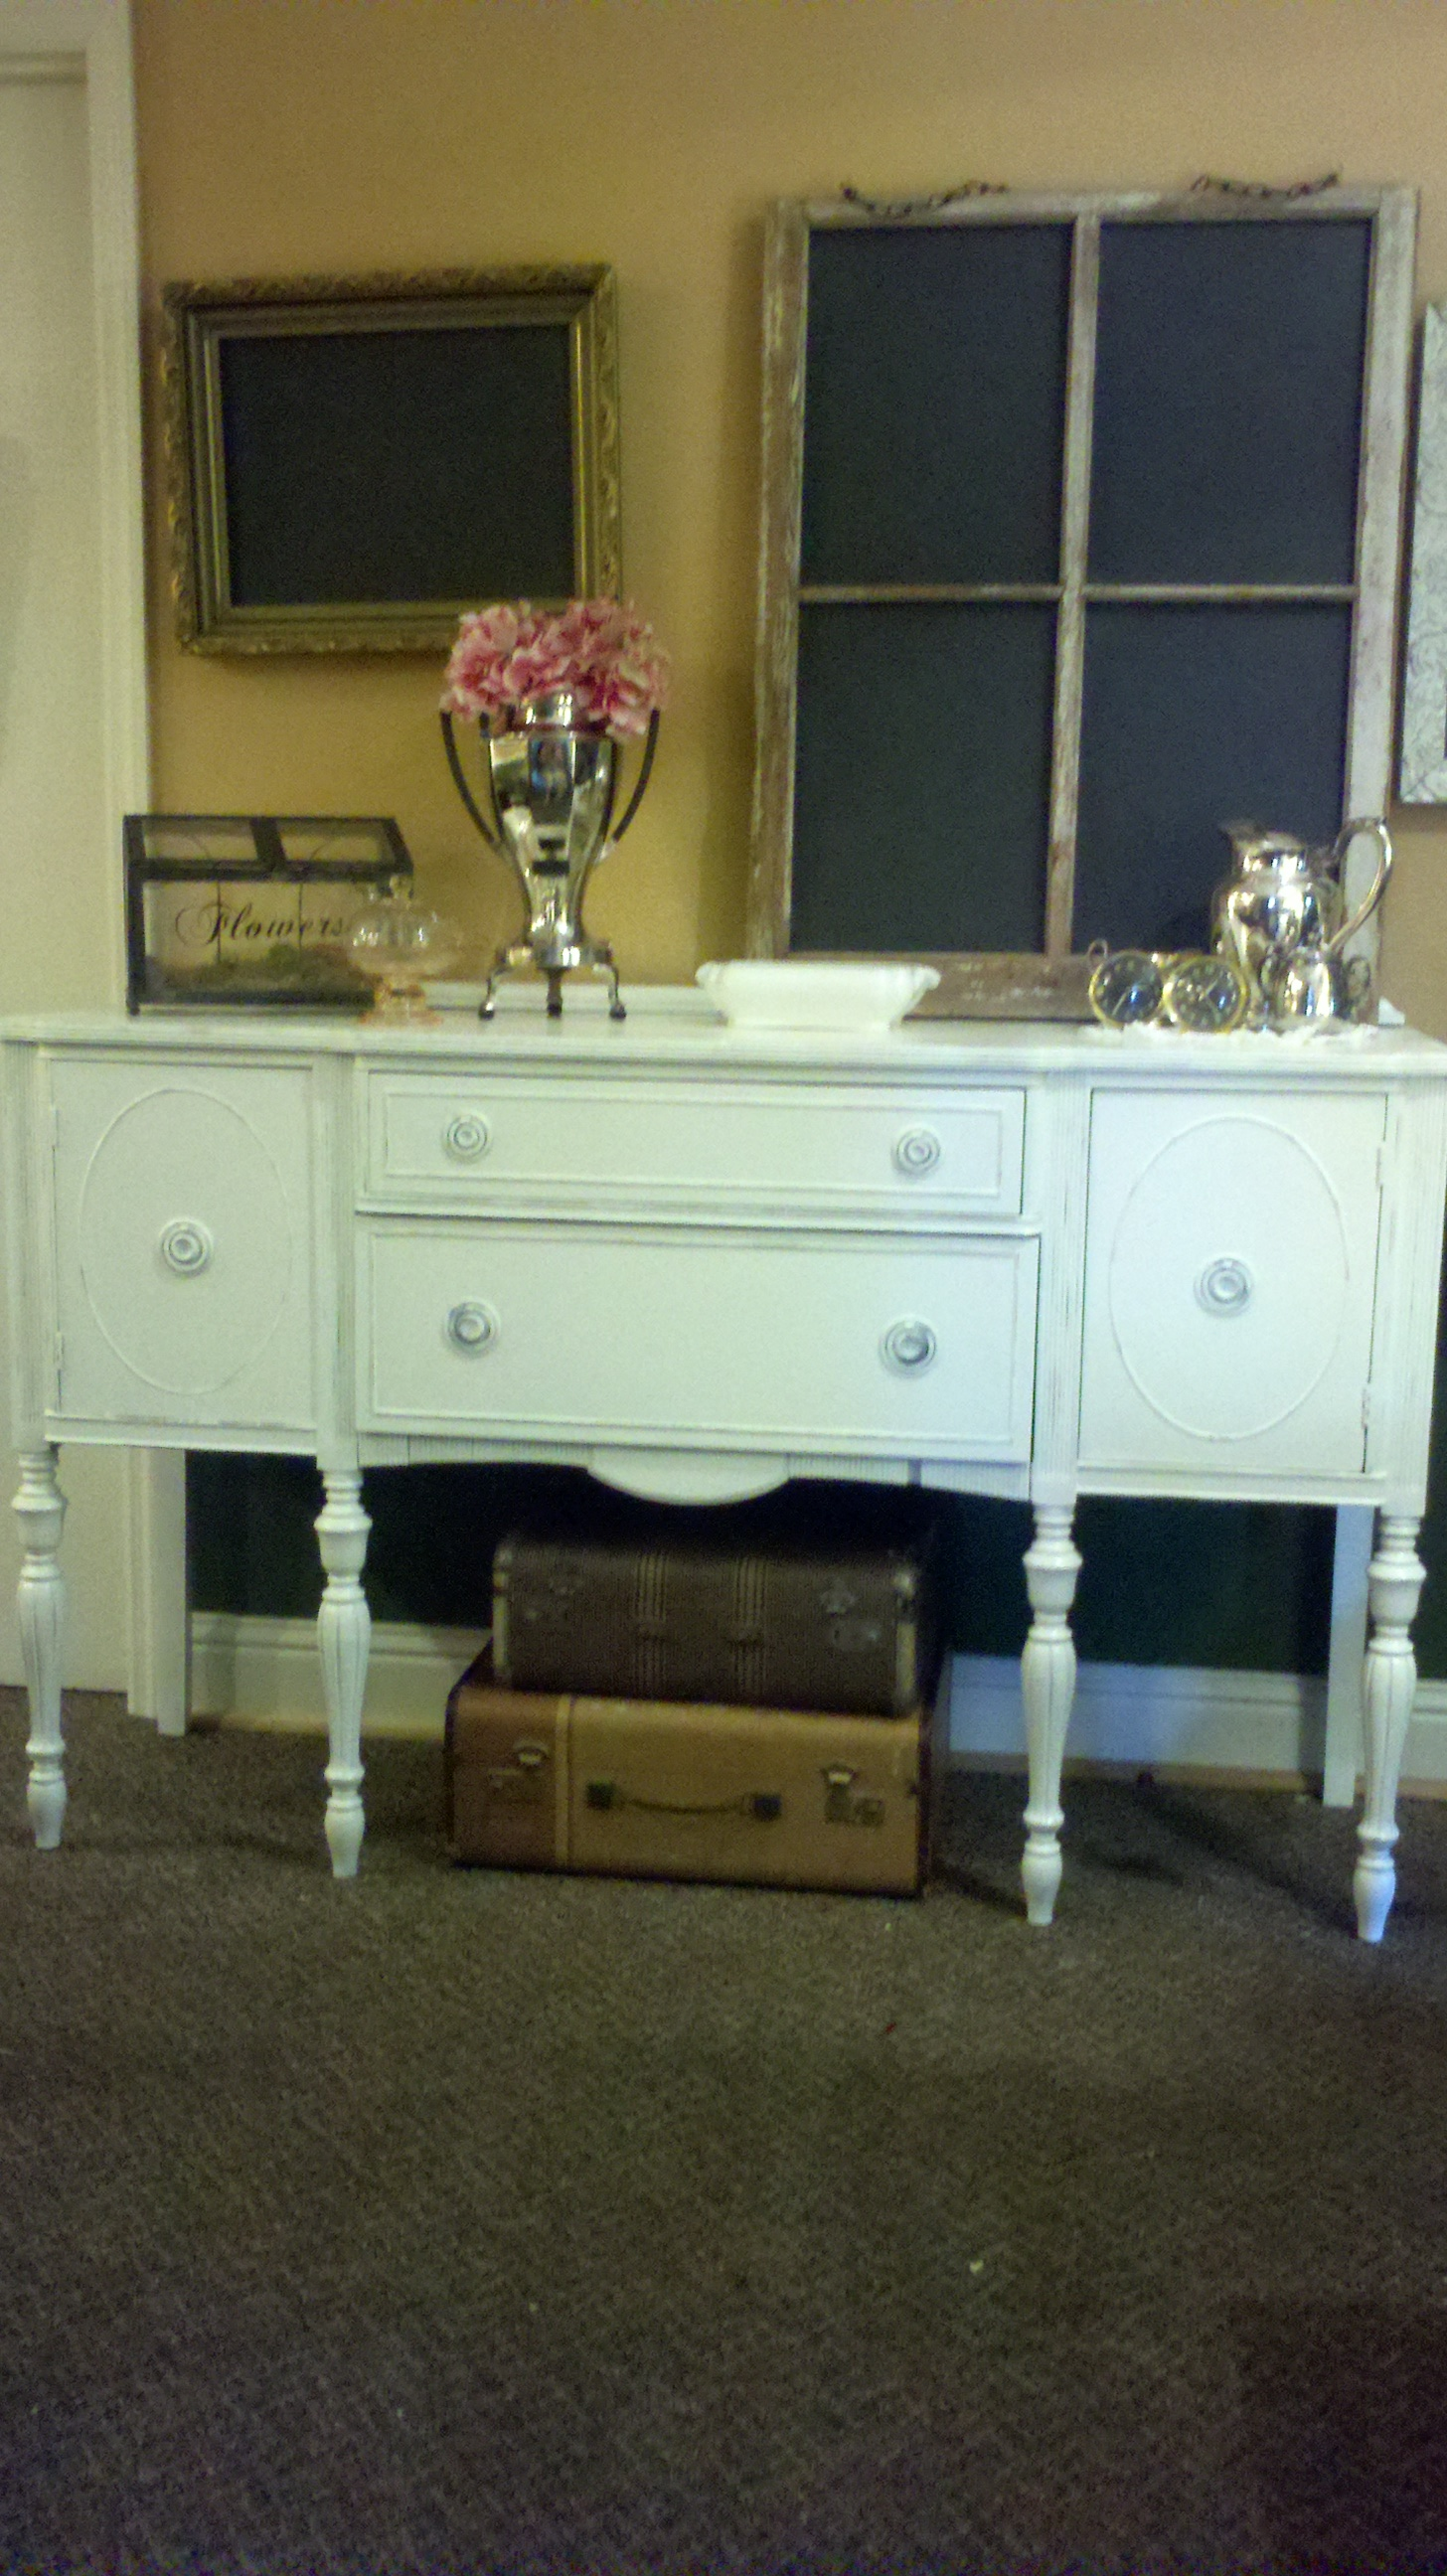 Latest vintage furniture painting project!